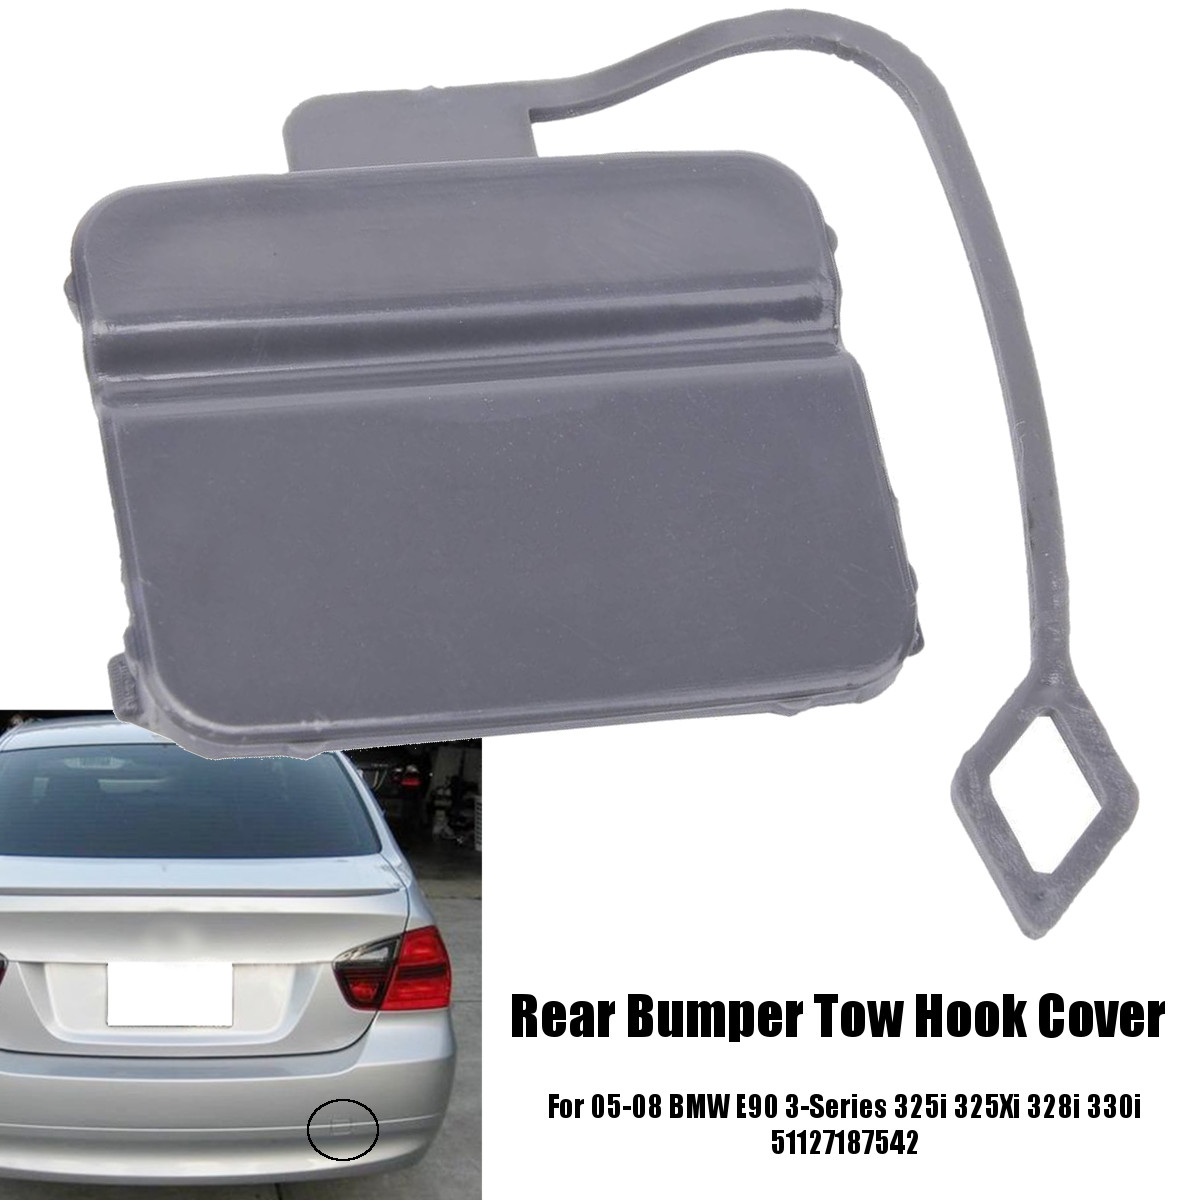 Rear Tow Eye Cover Compatible with BMW 3-SERIES 2012-2015 Primed Gray Sedan